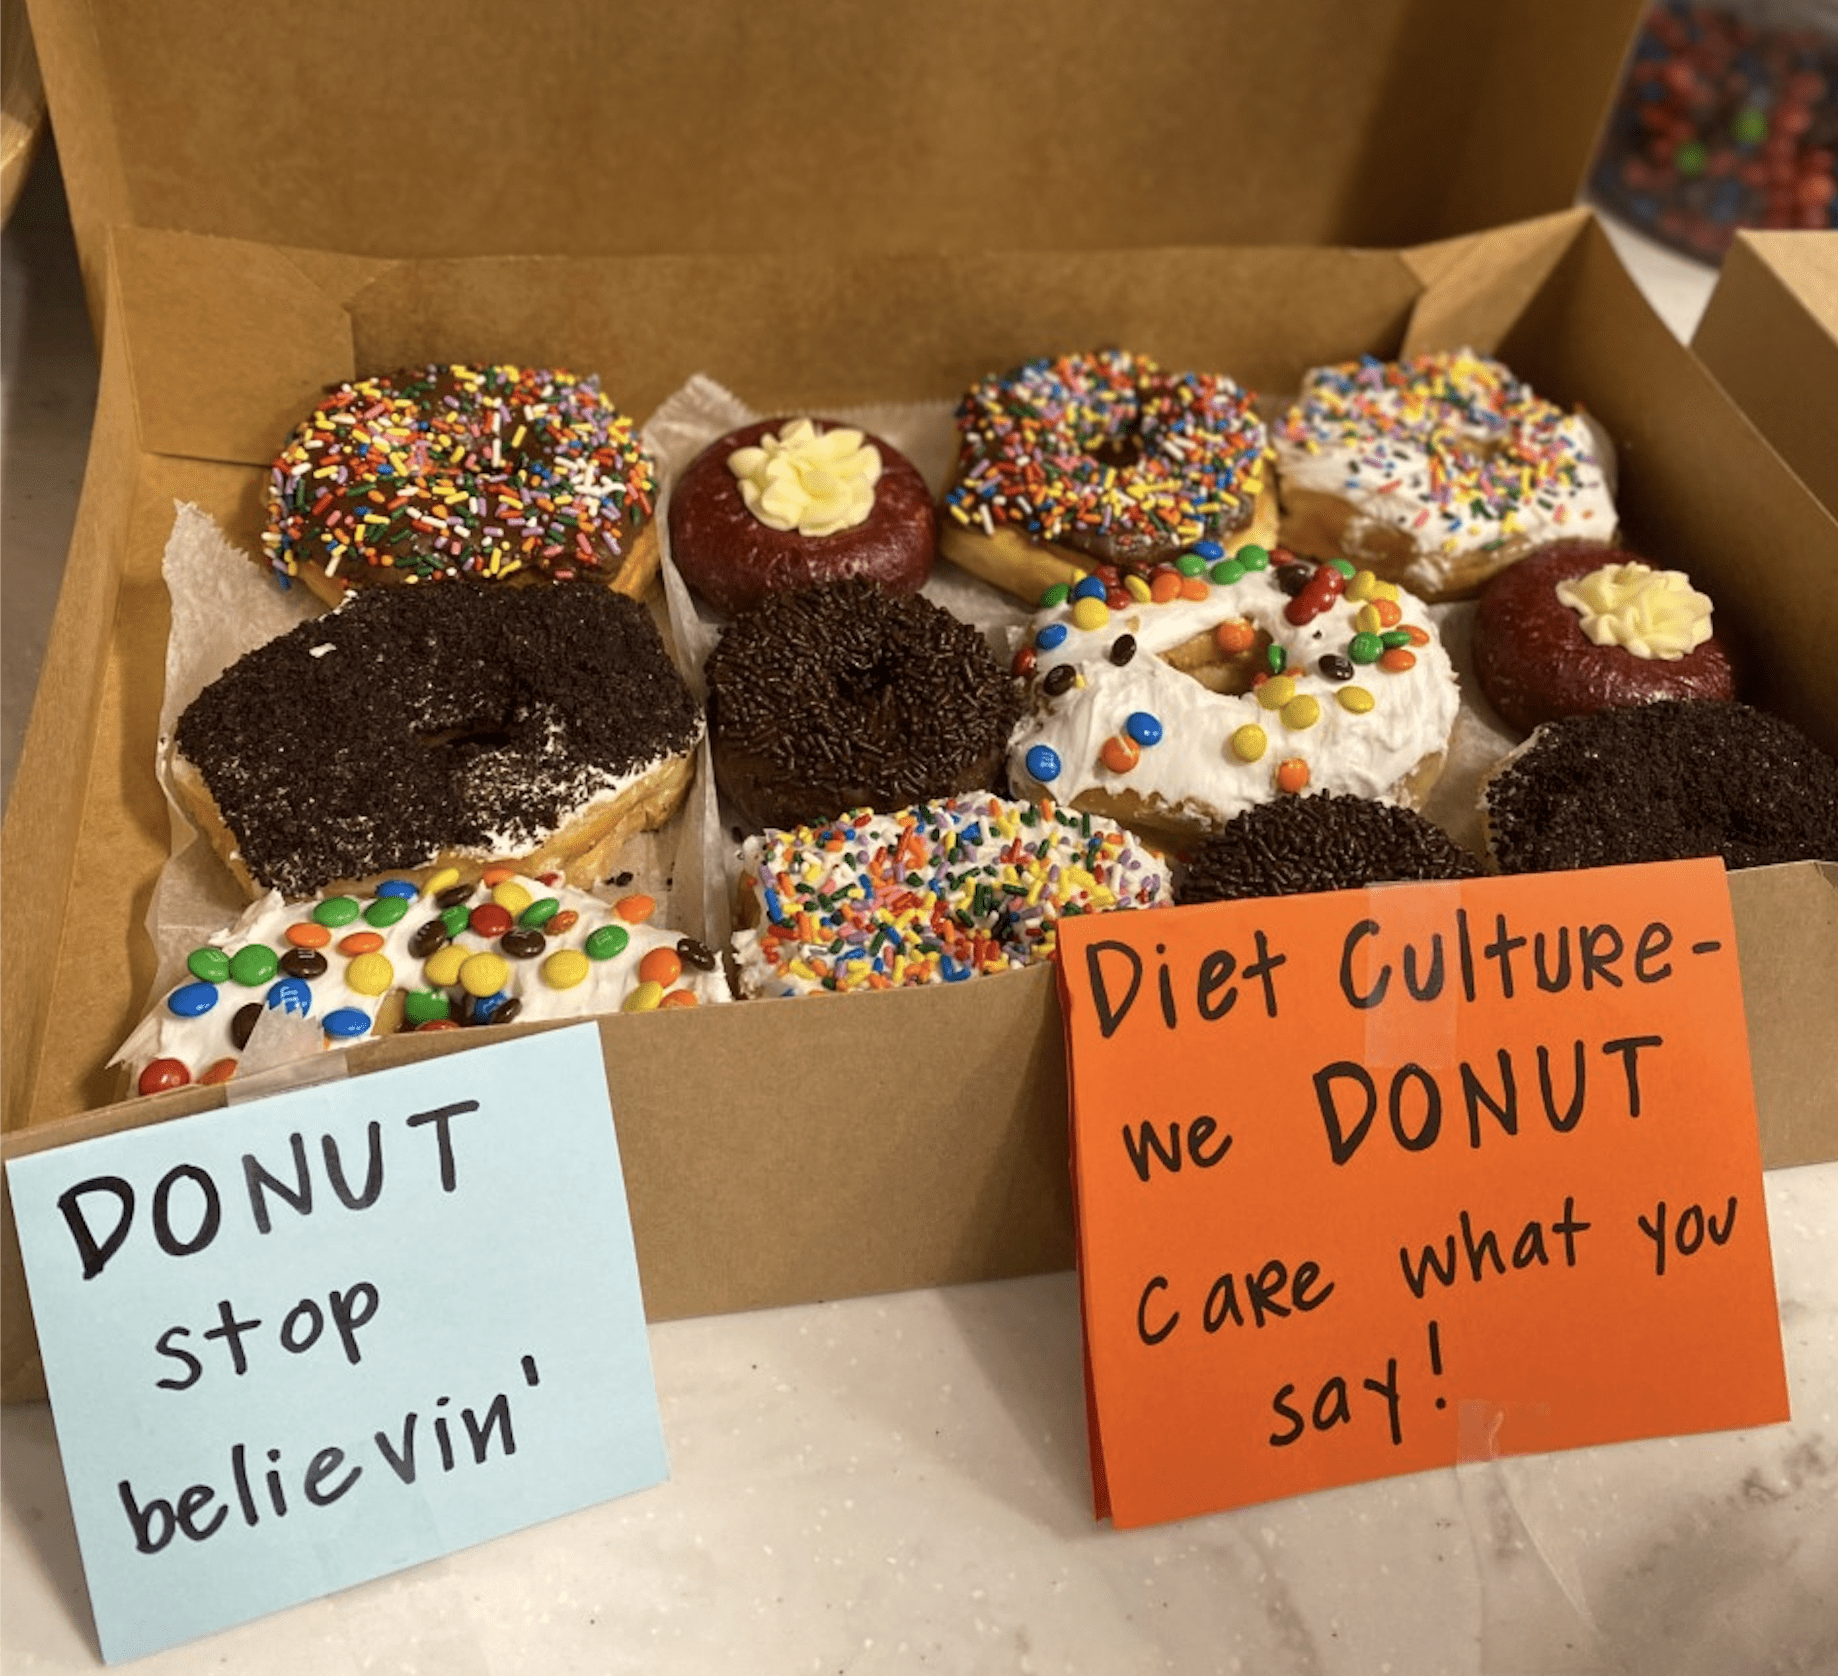 Punny Donuts about diet culture